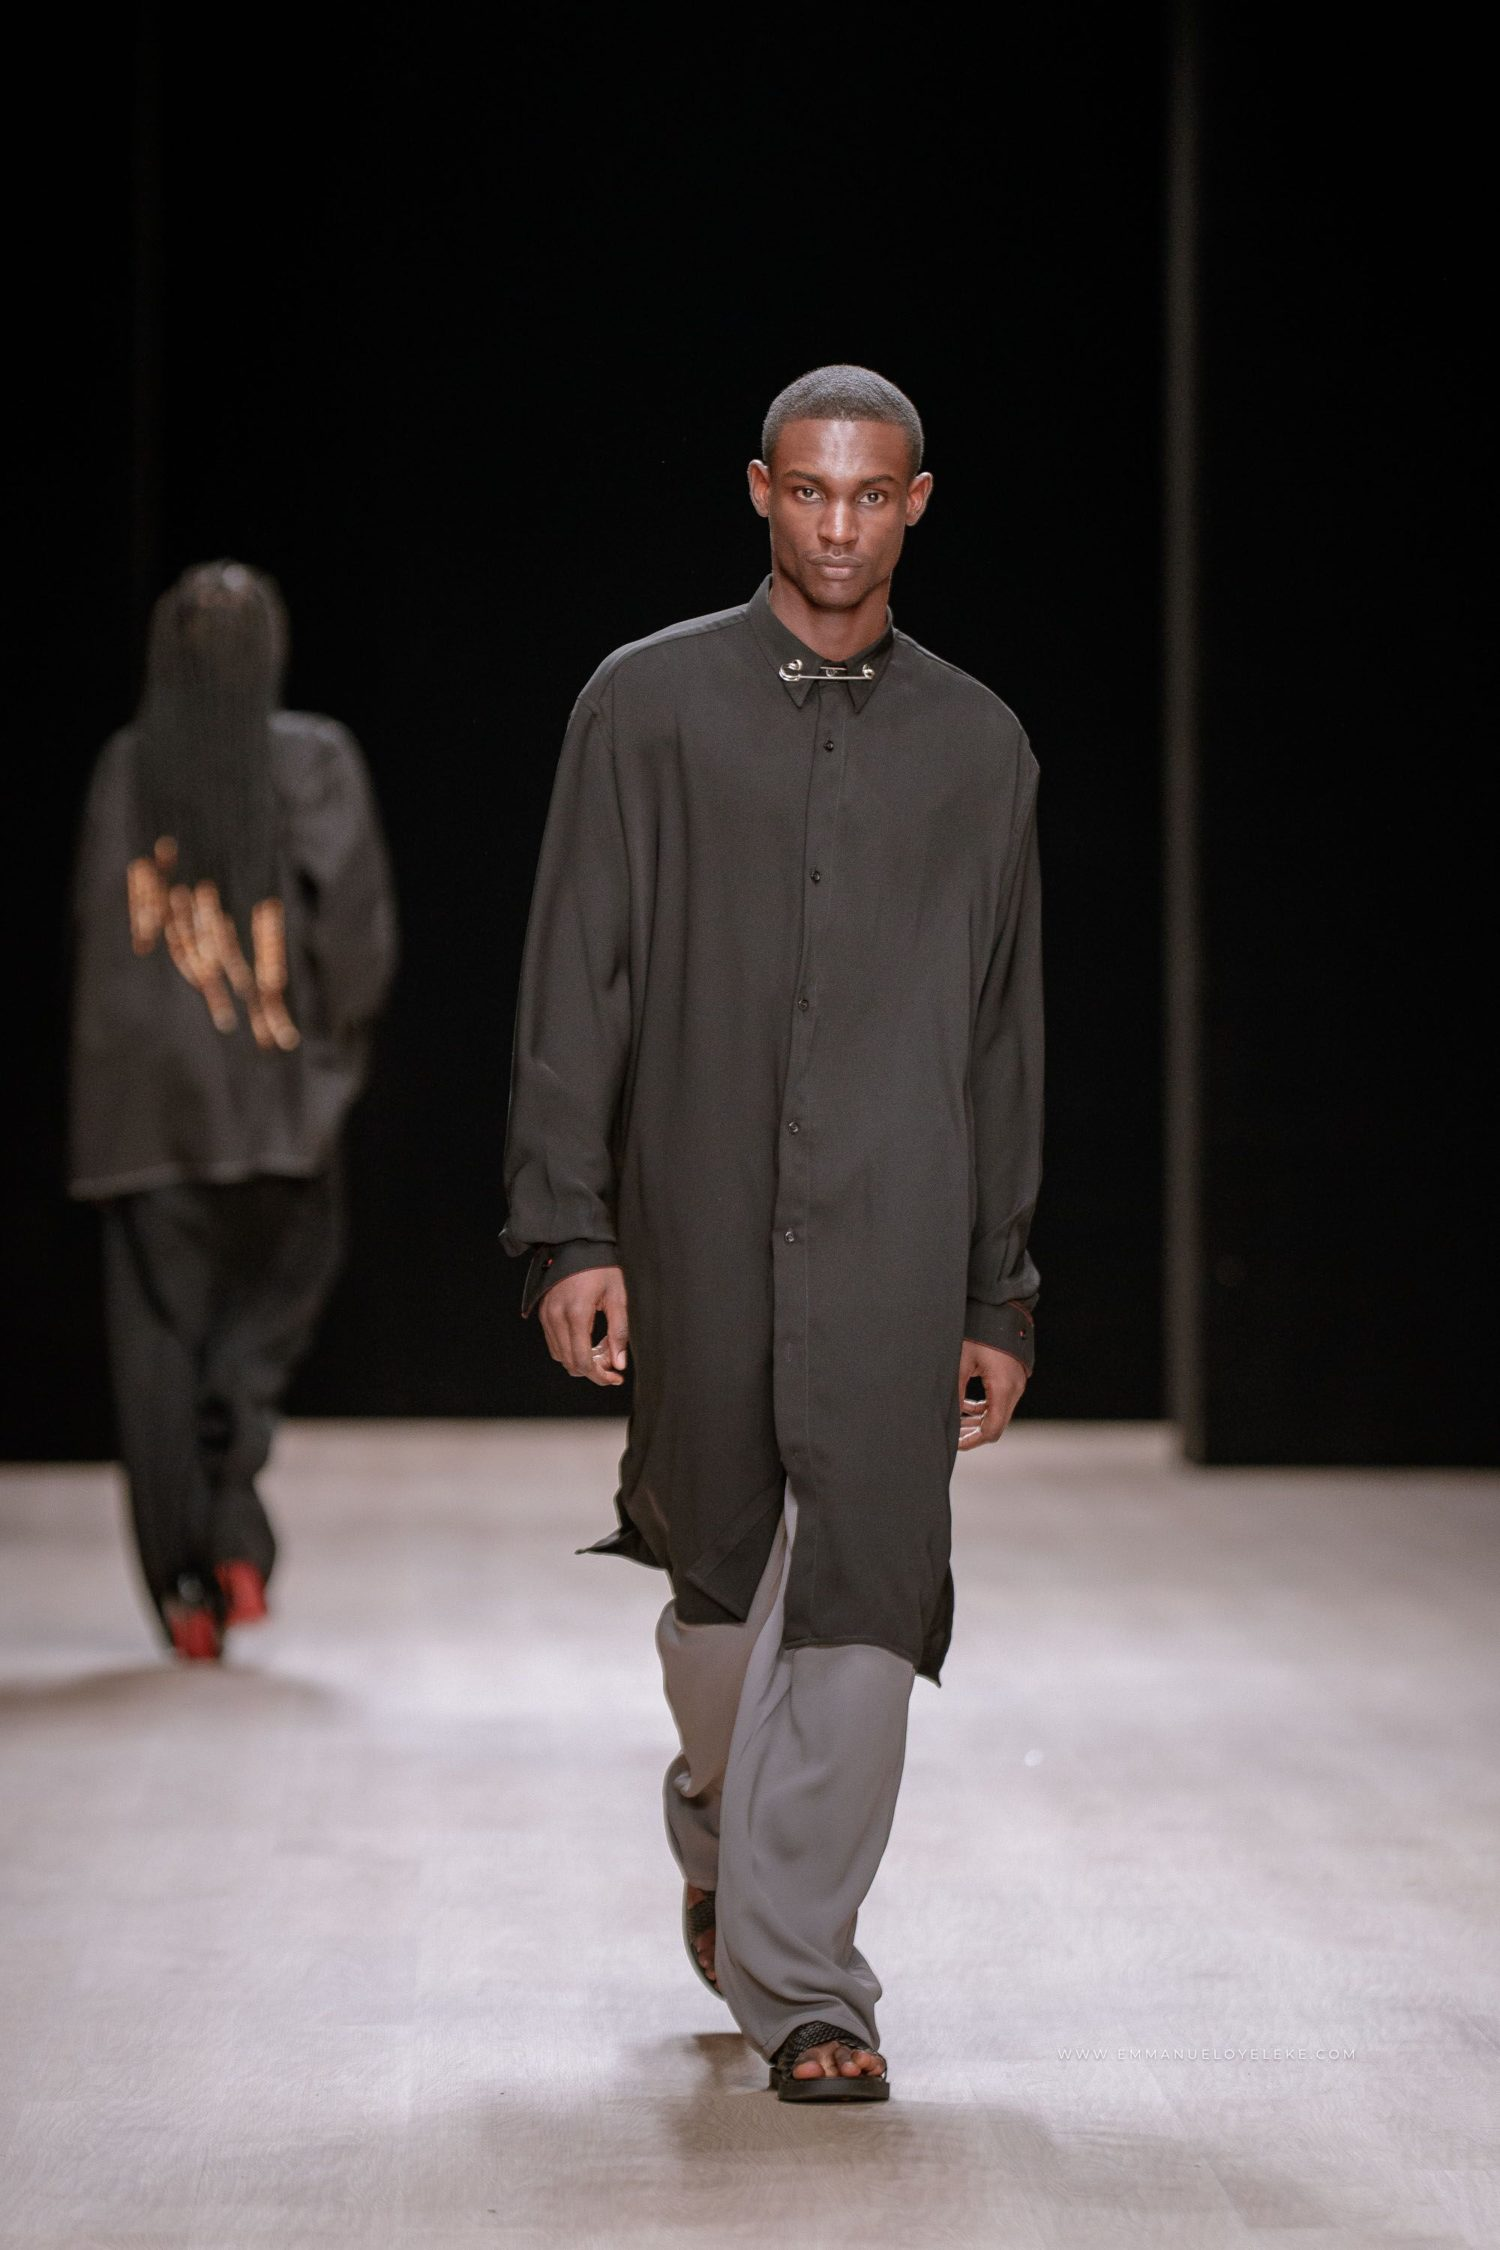 ARISE Fashion Week 2019 | Tzar